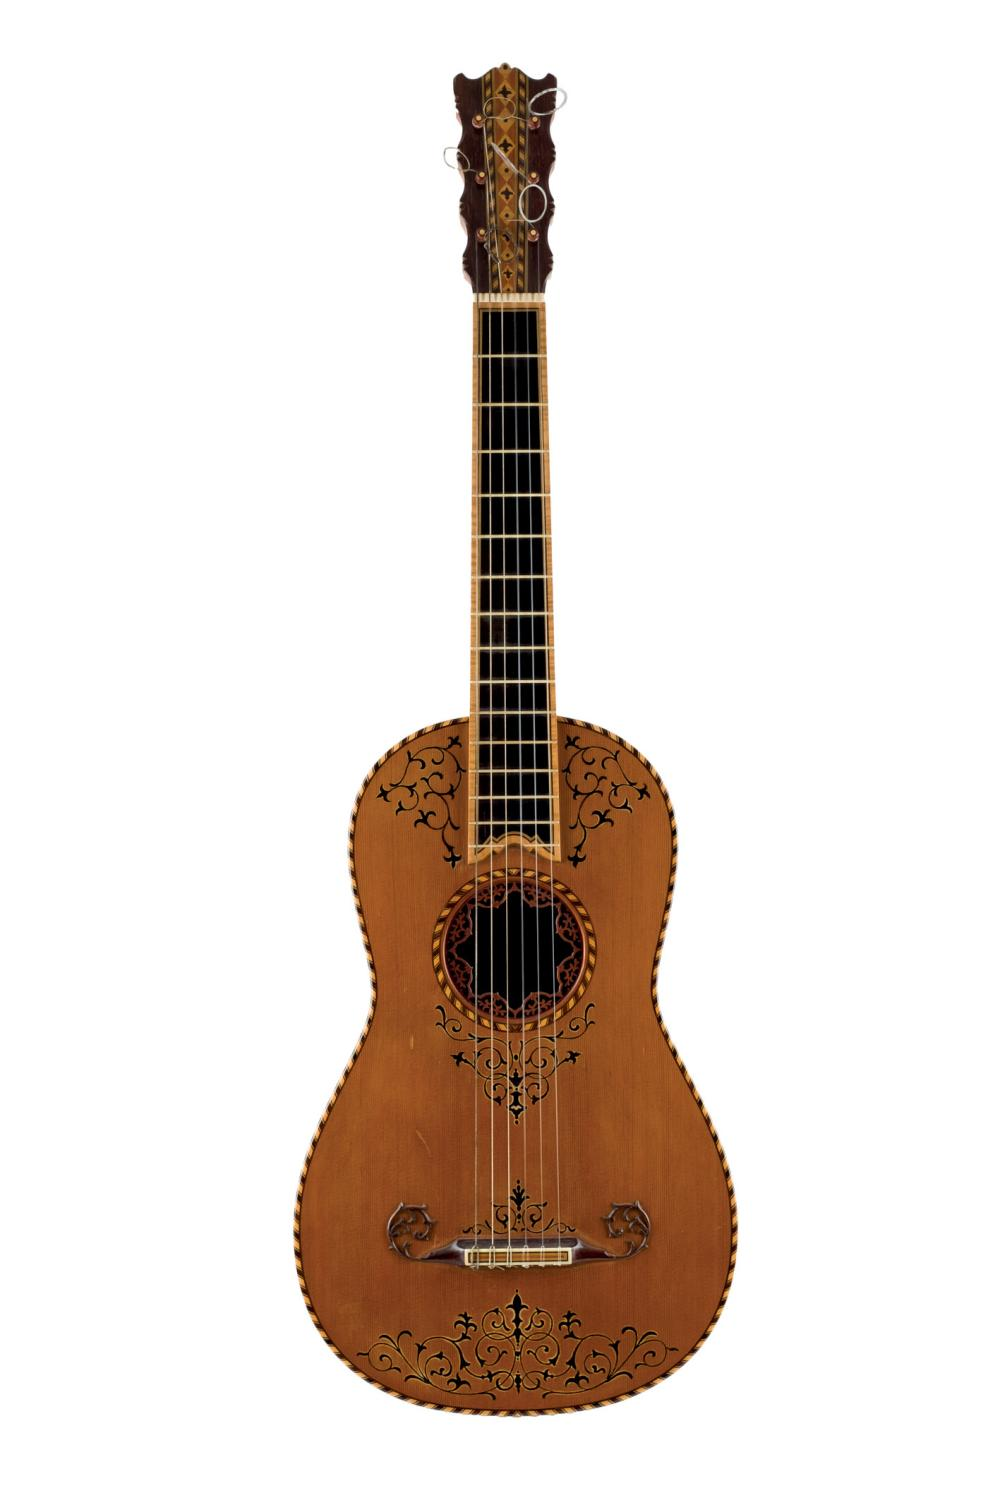 A baroque-style guitar by M.L.N., 1972